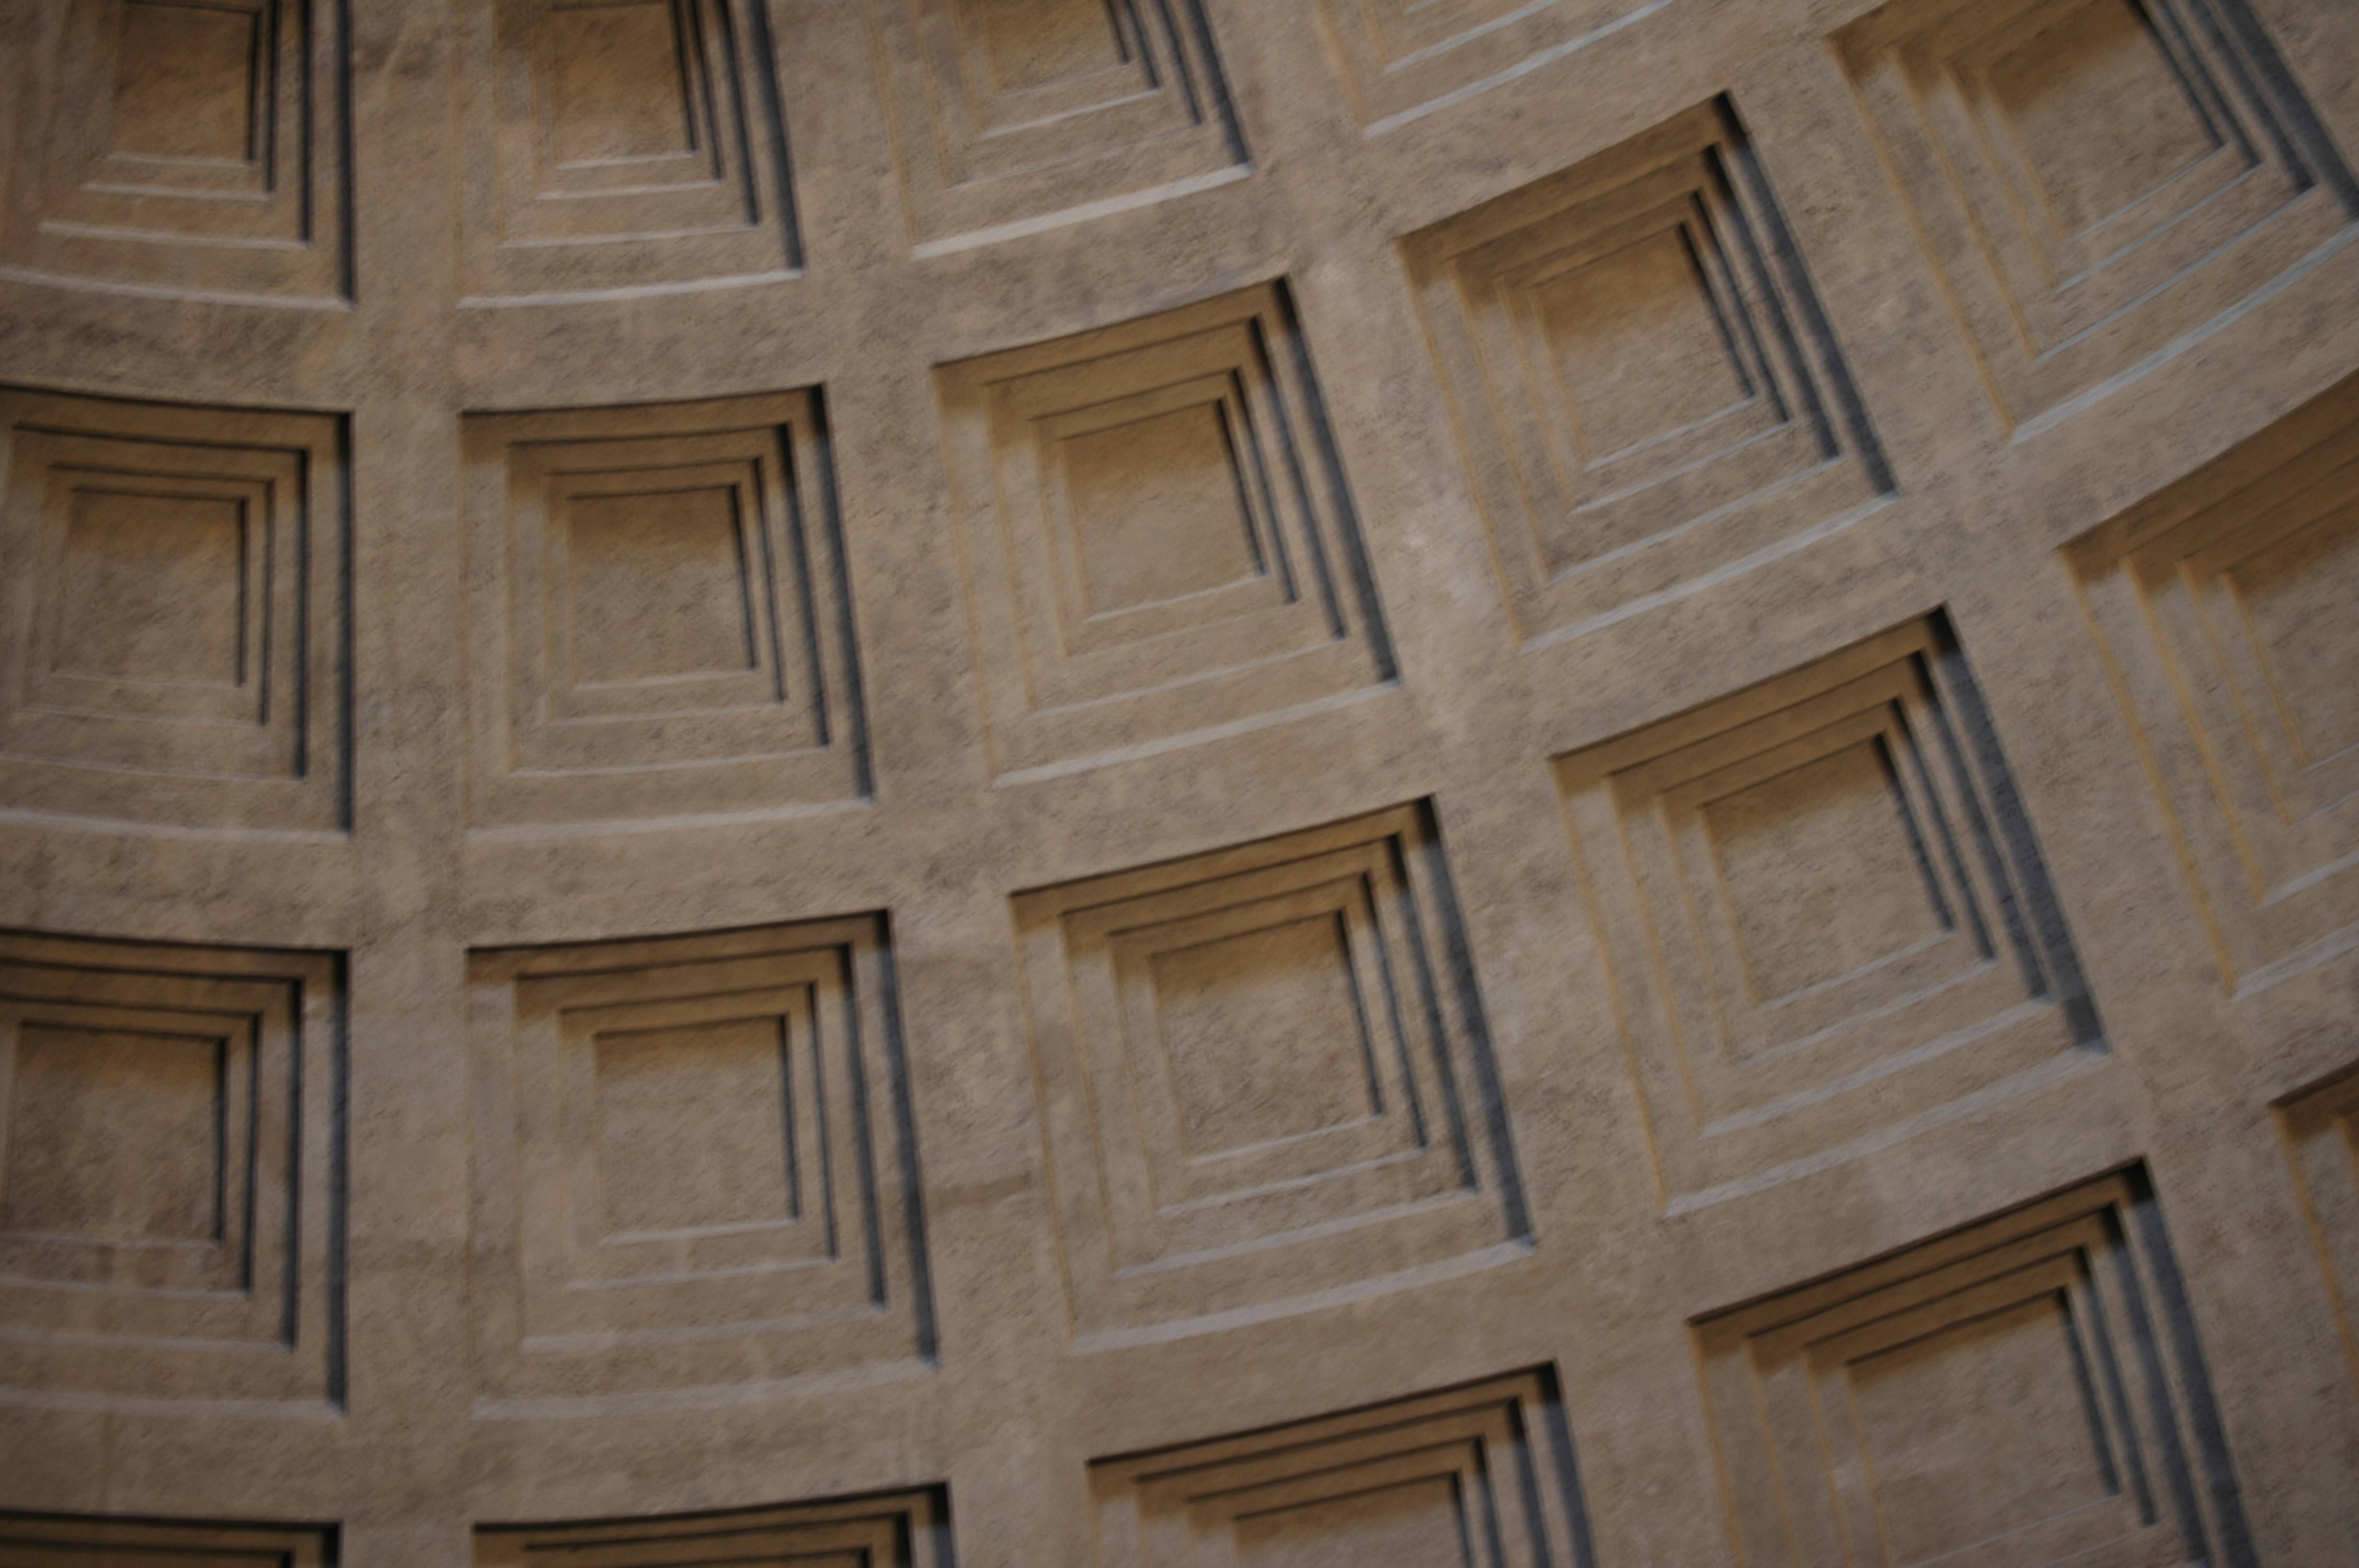 Close-up of Rome Pantheon square tiled dome ceiling